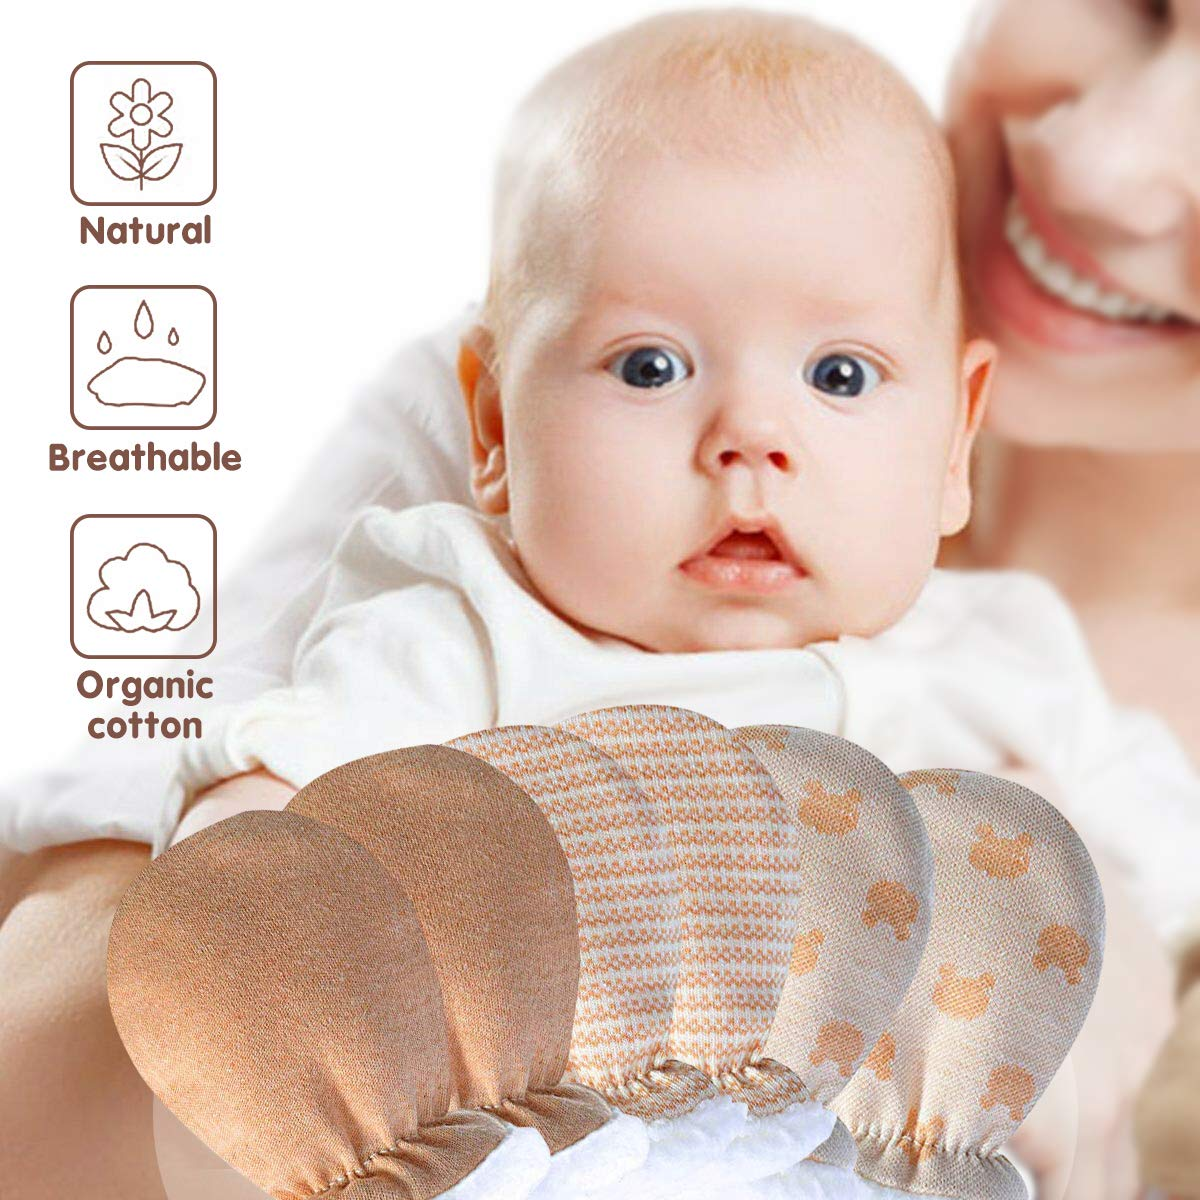 Wool Lined Unisex Mitts ideal Gifts for 0-12 Months Infant Toddler Baby Anti Scratch Mittens Gloves Cotton Scratch Mits Baby Essentials for Newborn Boy Girl